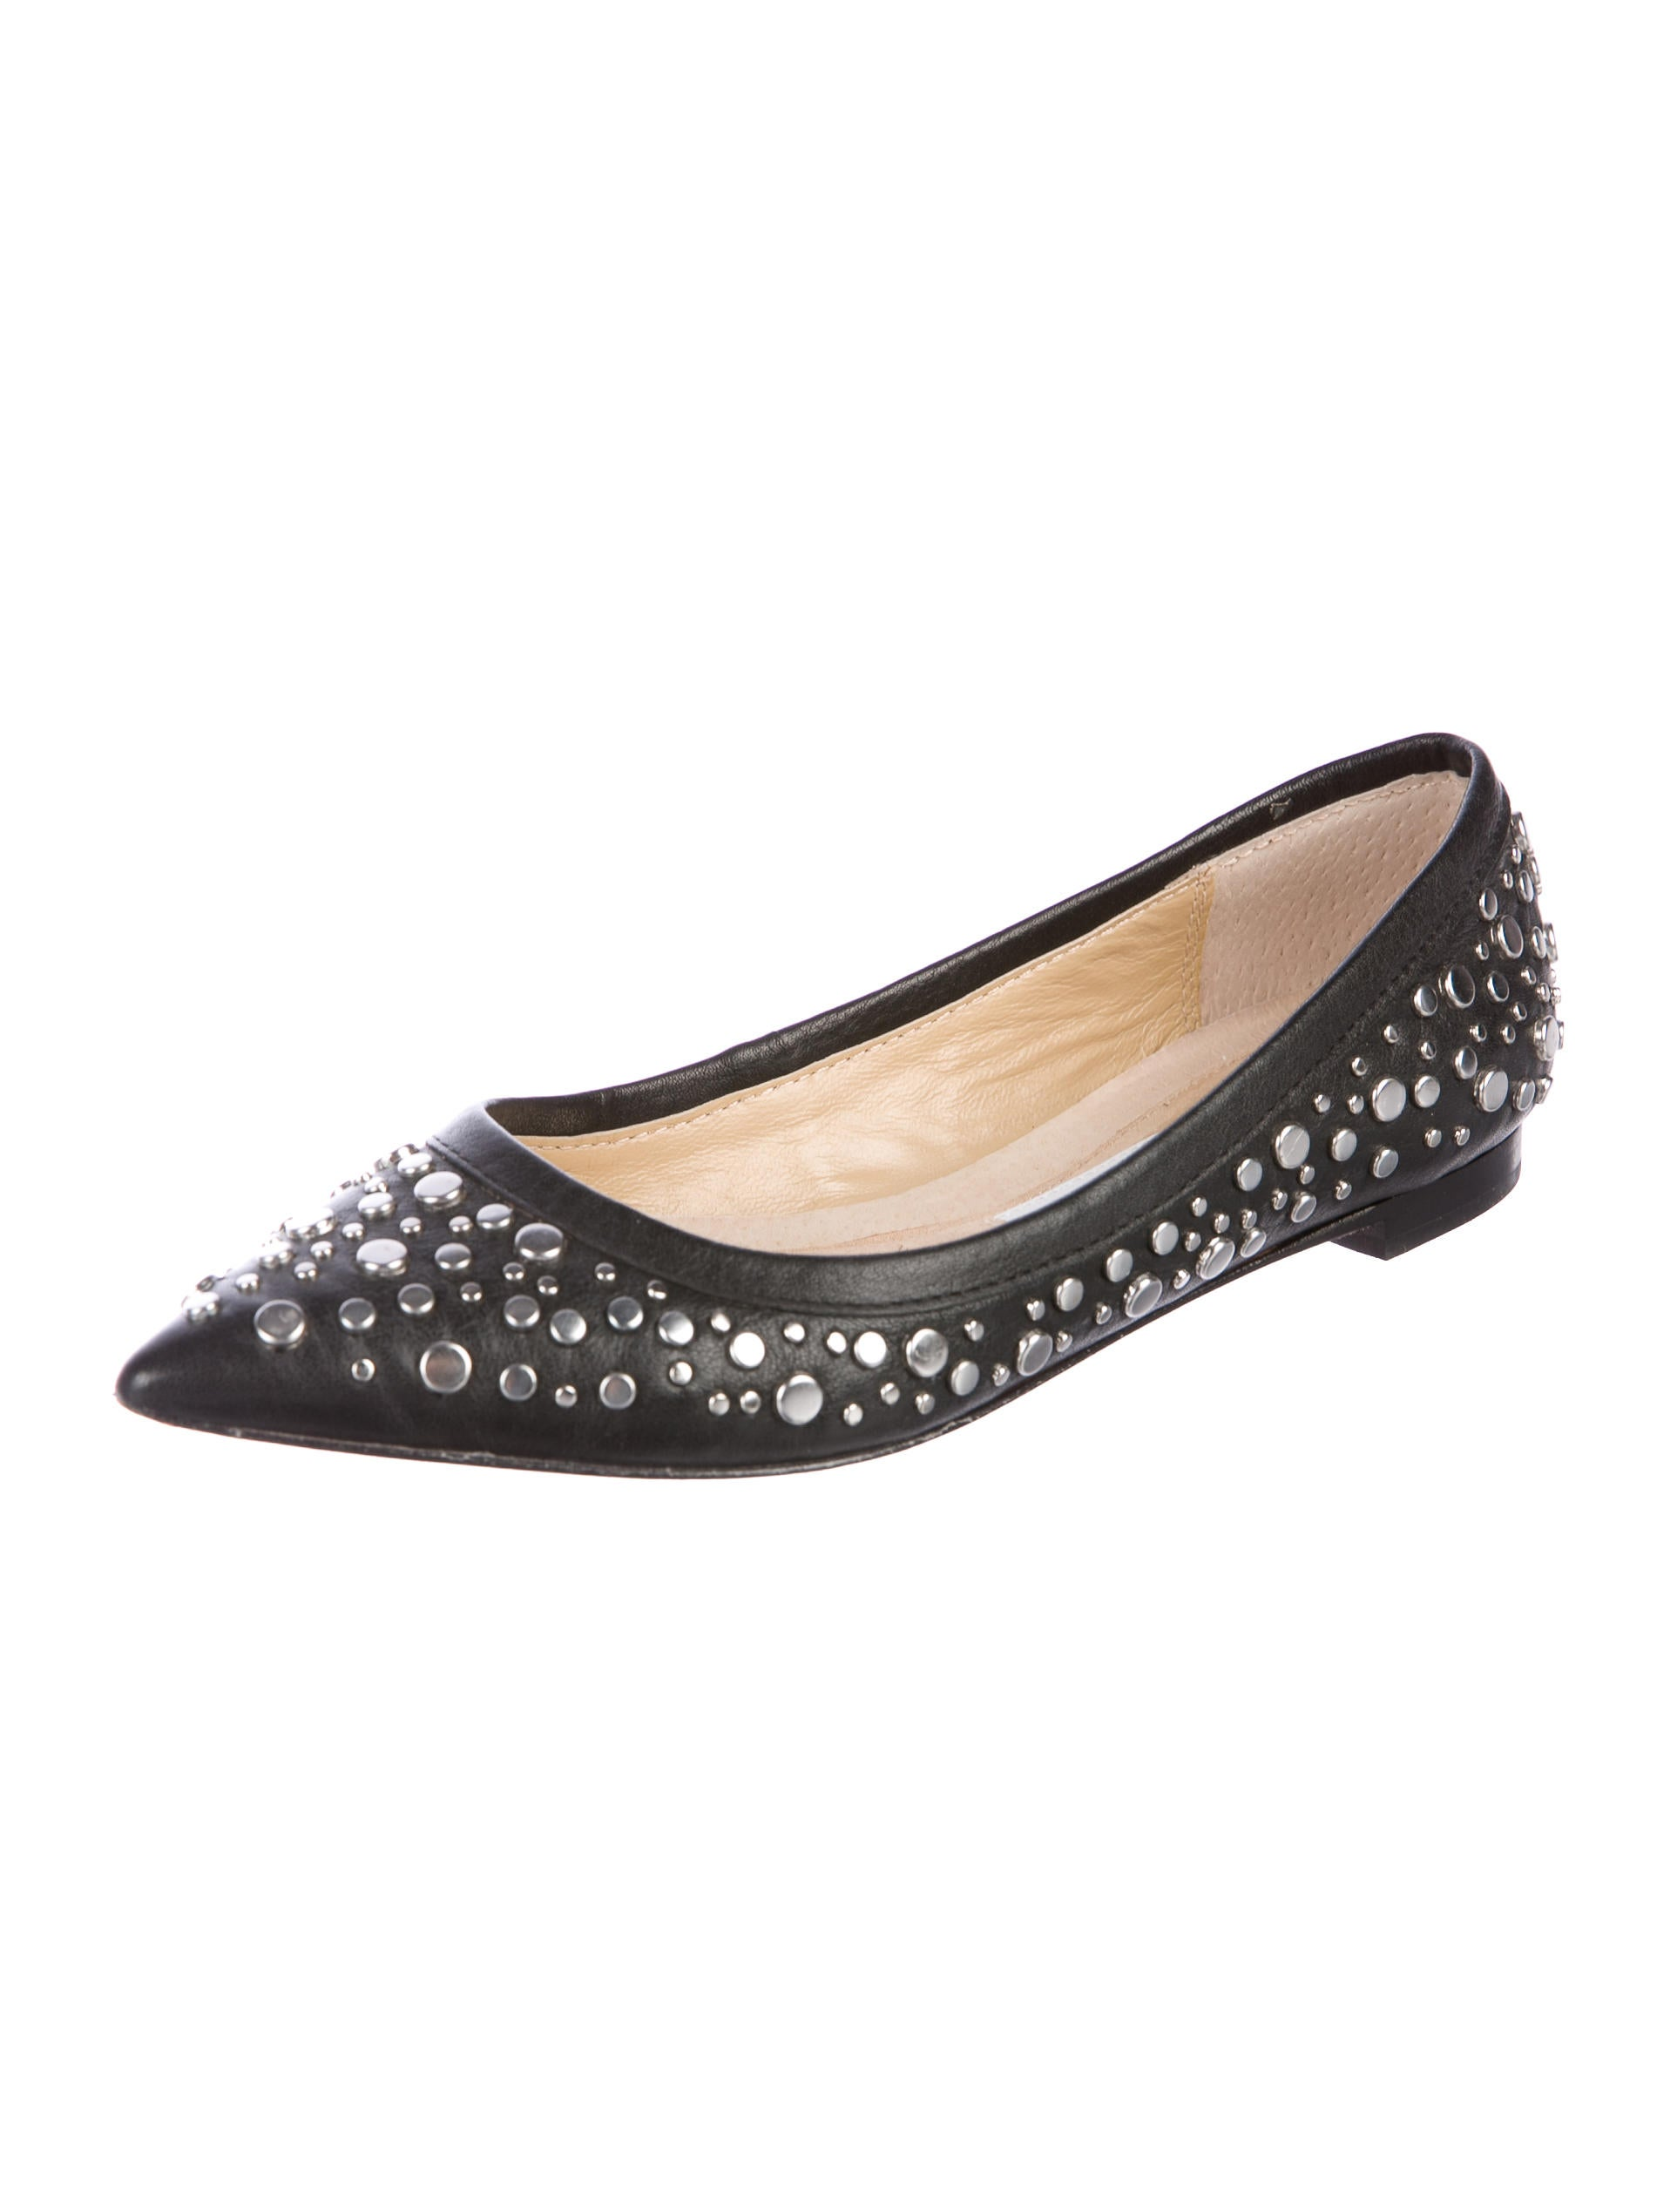 Diane von Furstenberg Embellished Pointed-Toe Flats clearance for nice online cheap authentic discount for sale Na6x2lp